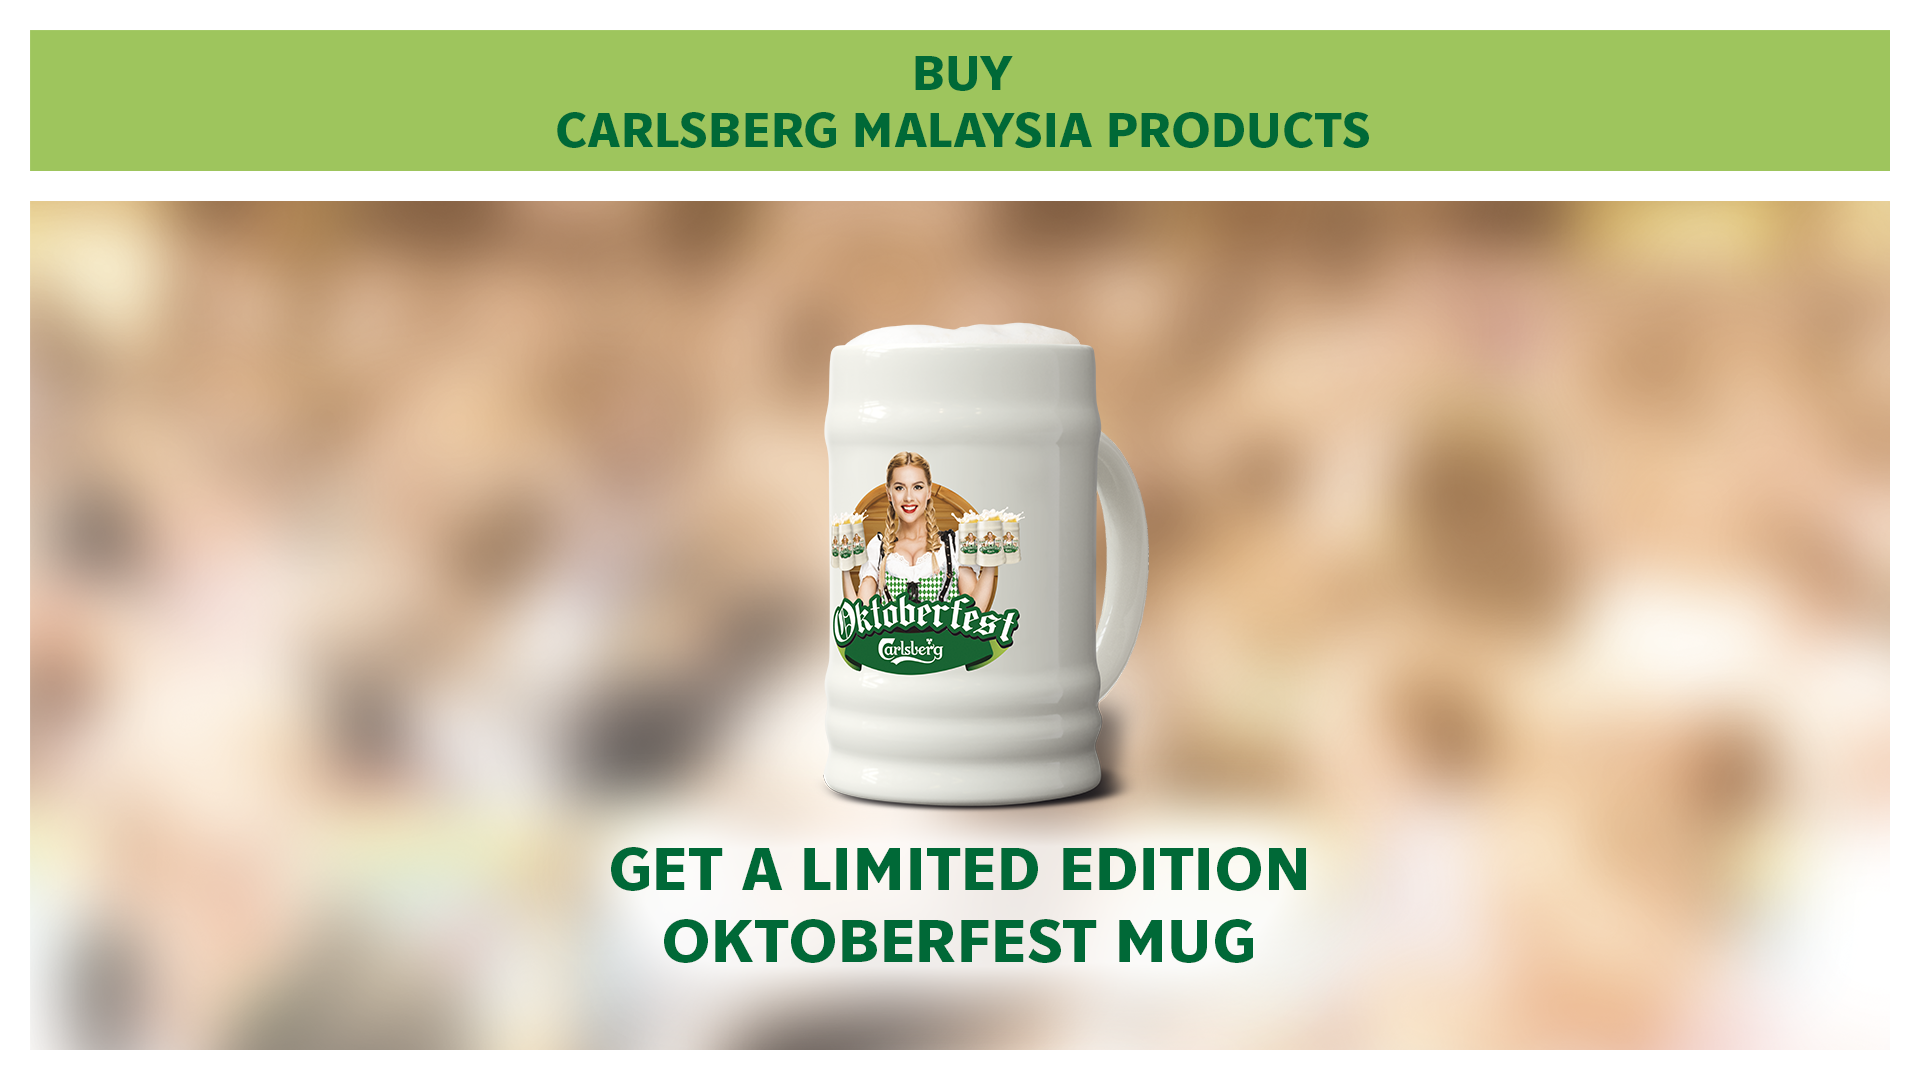 BUY CARLSBERG MALAYSIA PRODUCTS